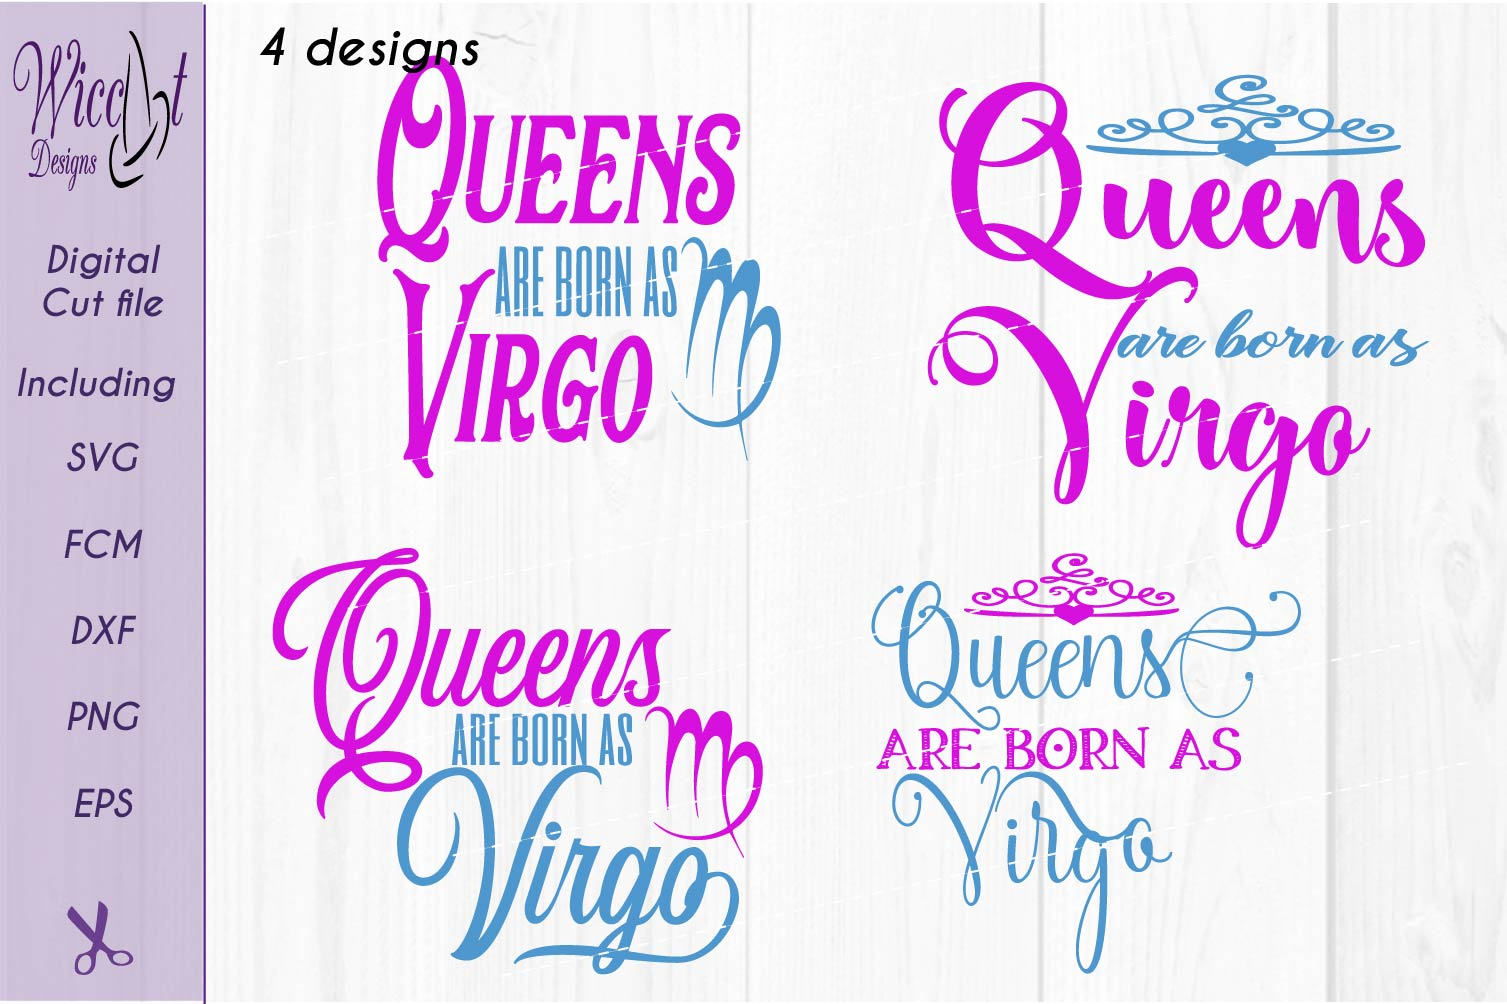 Zodiac quote svg, Queens quote svg, born as Virgo sign example image 4